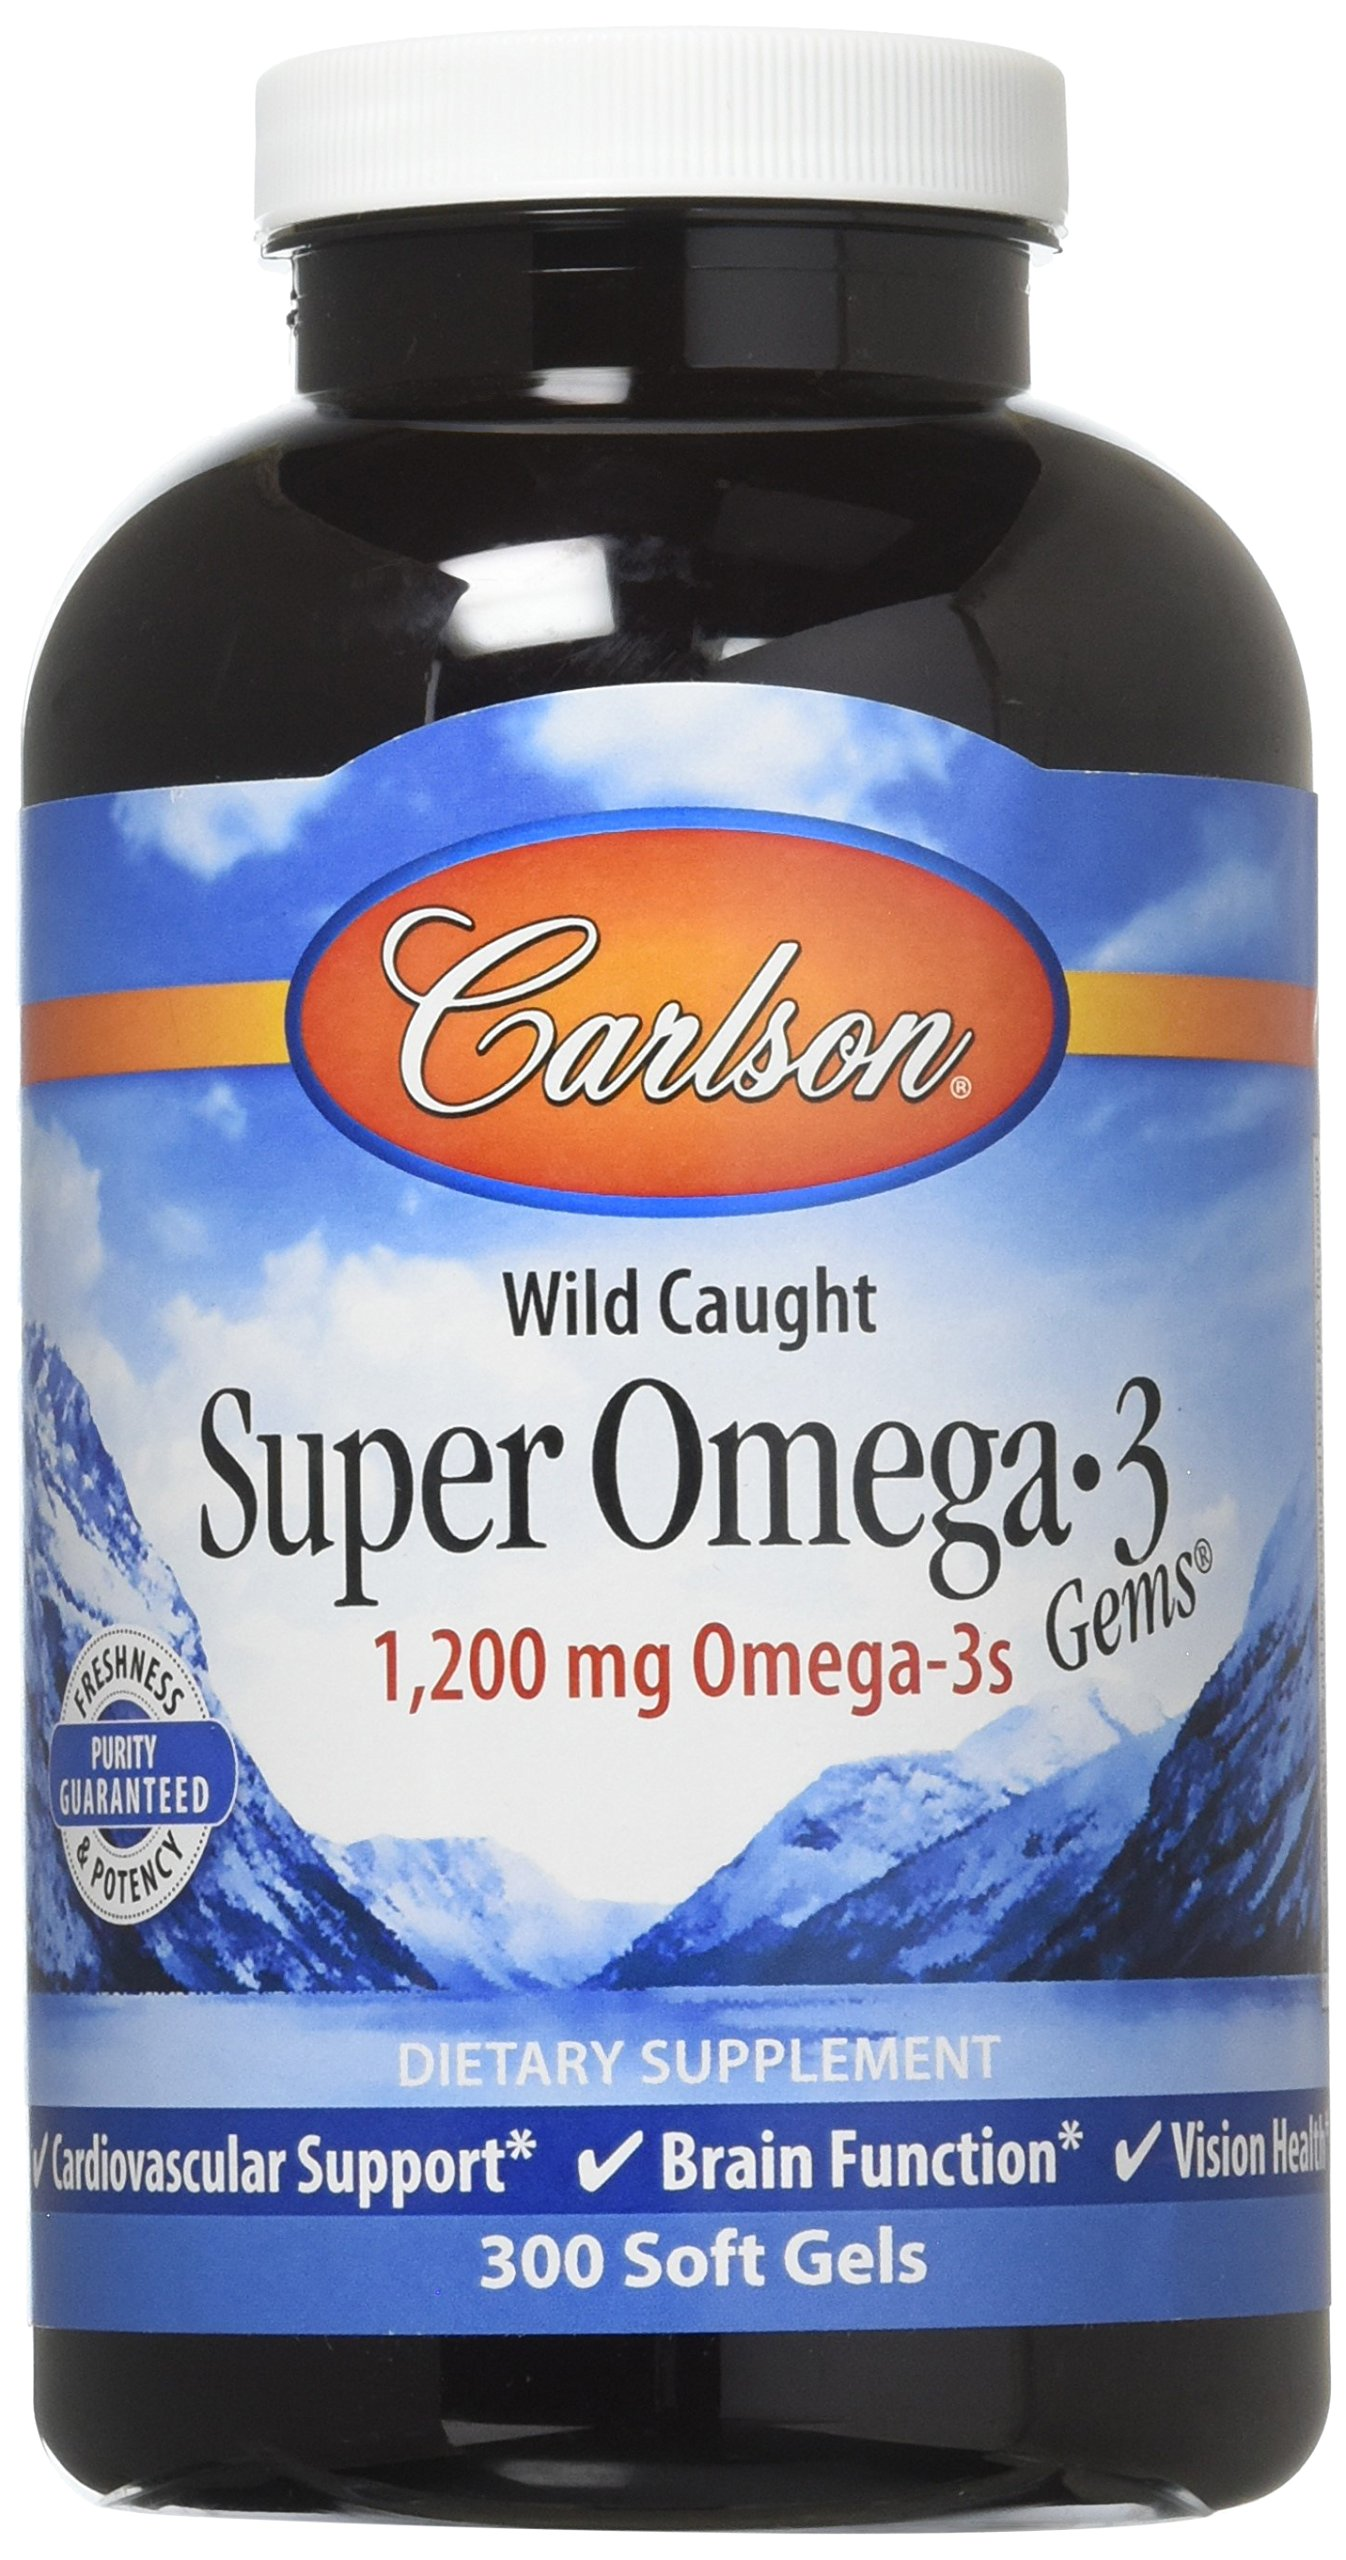 Carlson Super Omega-3 Gems, Norwegian, 1,200 mg Omega-3s, 300 Soft Gels